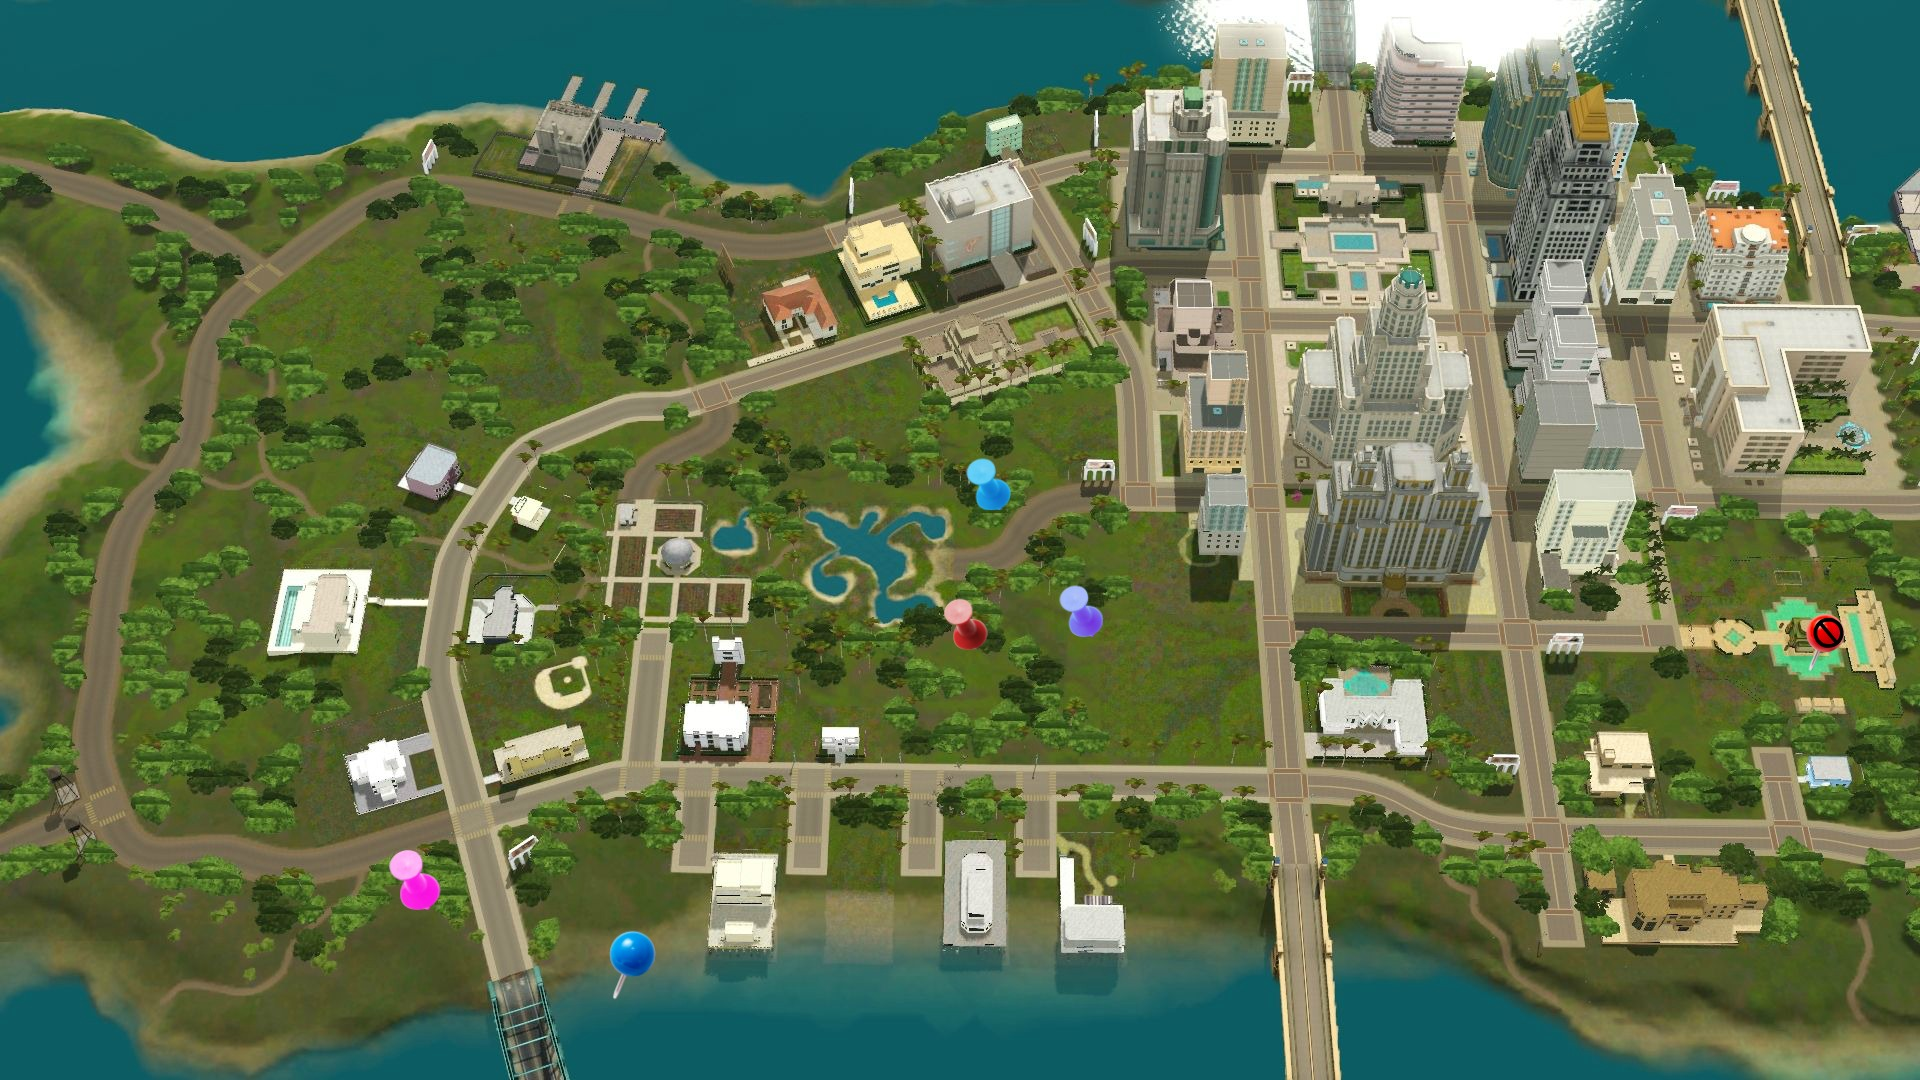 Sims 3 roaring heights world collectible maps rollercoasters map of the roaring heights town center showing where to find rare collectibles publicscrutiny Gallery